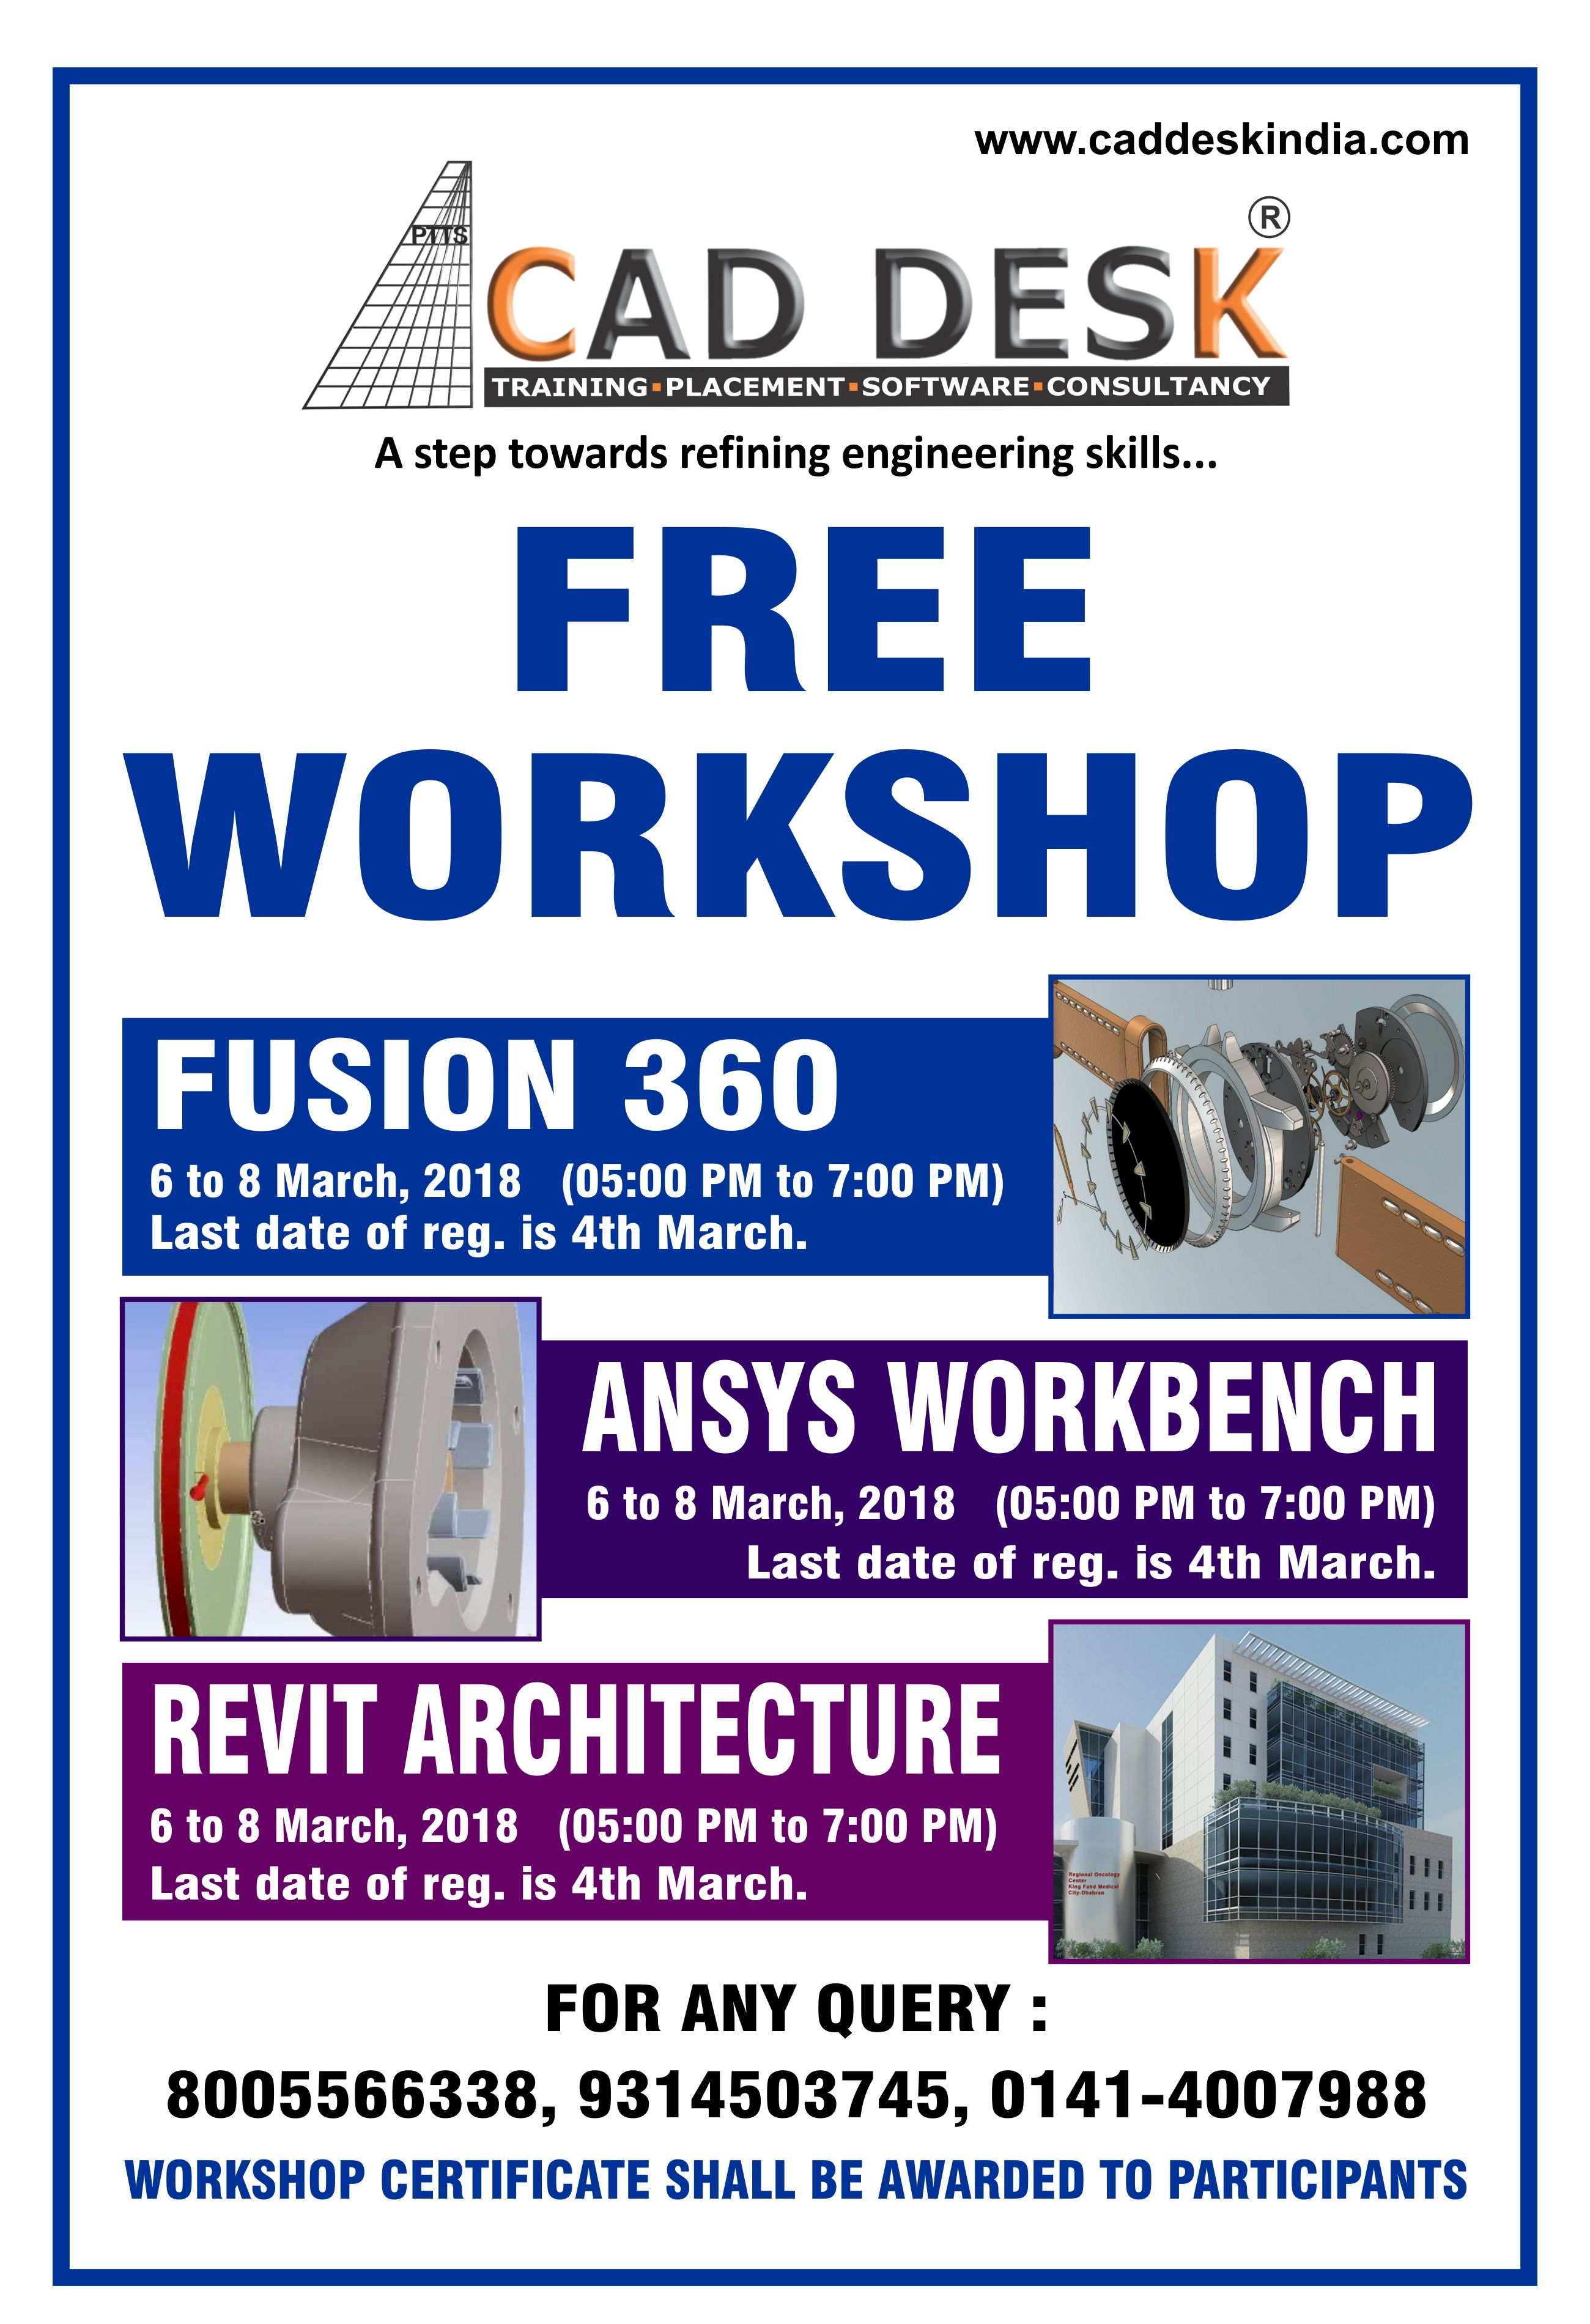 Cad Desk is going to conduct a Free Workshop on Fusion 360